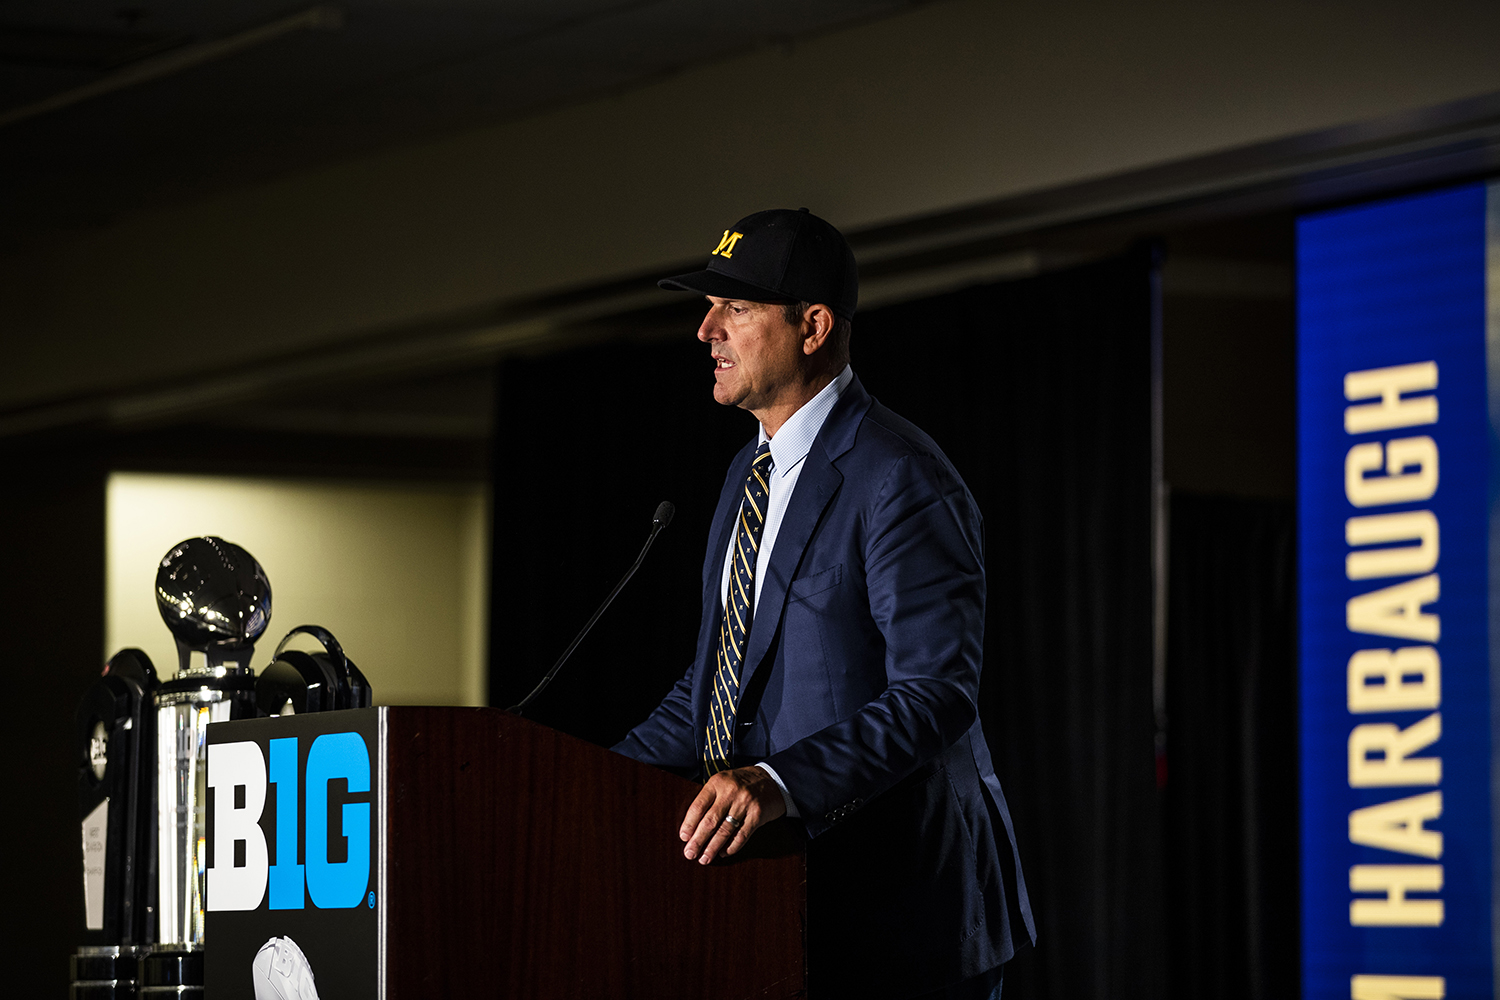 Michigan head coach Jim Harbaugh speaks during the second day of Big Ten Football Media Days in Chicago, Ill., on Friday, July 19, 2019.